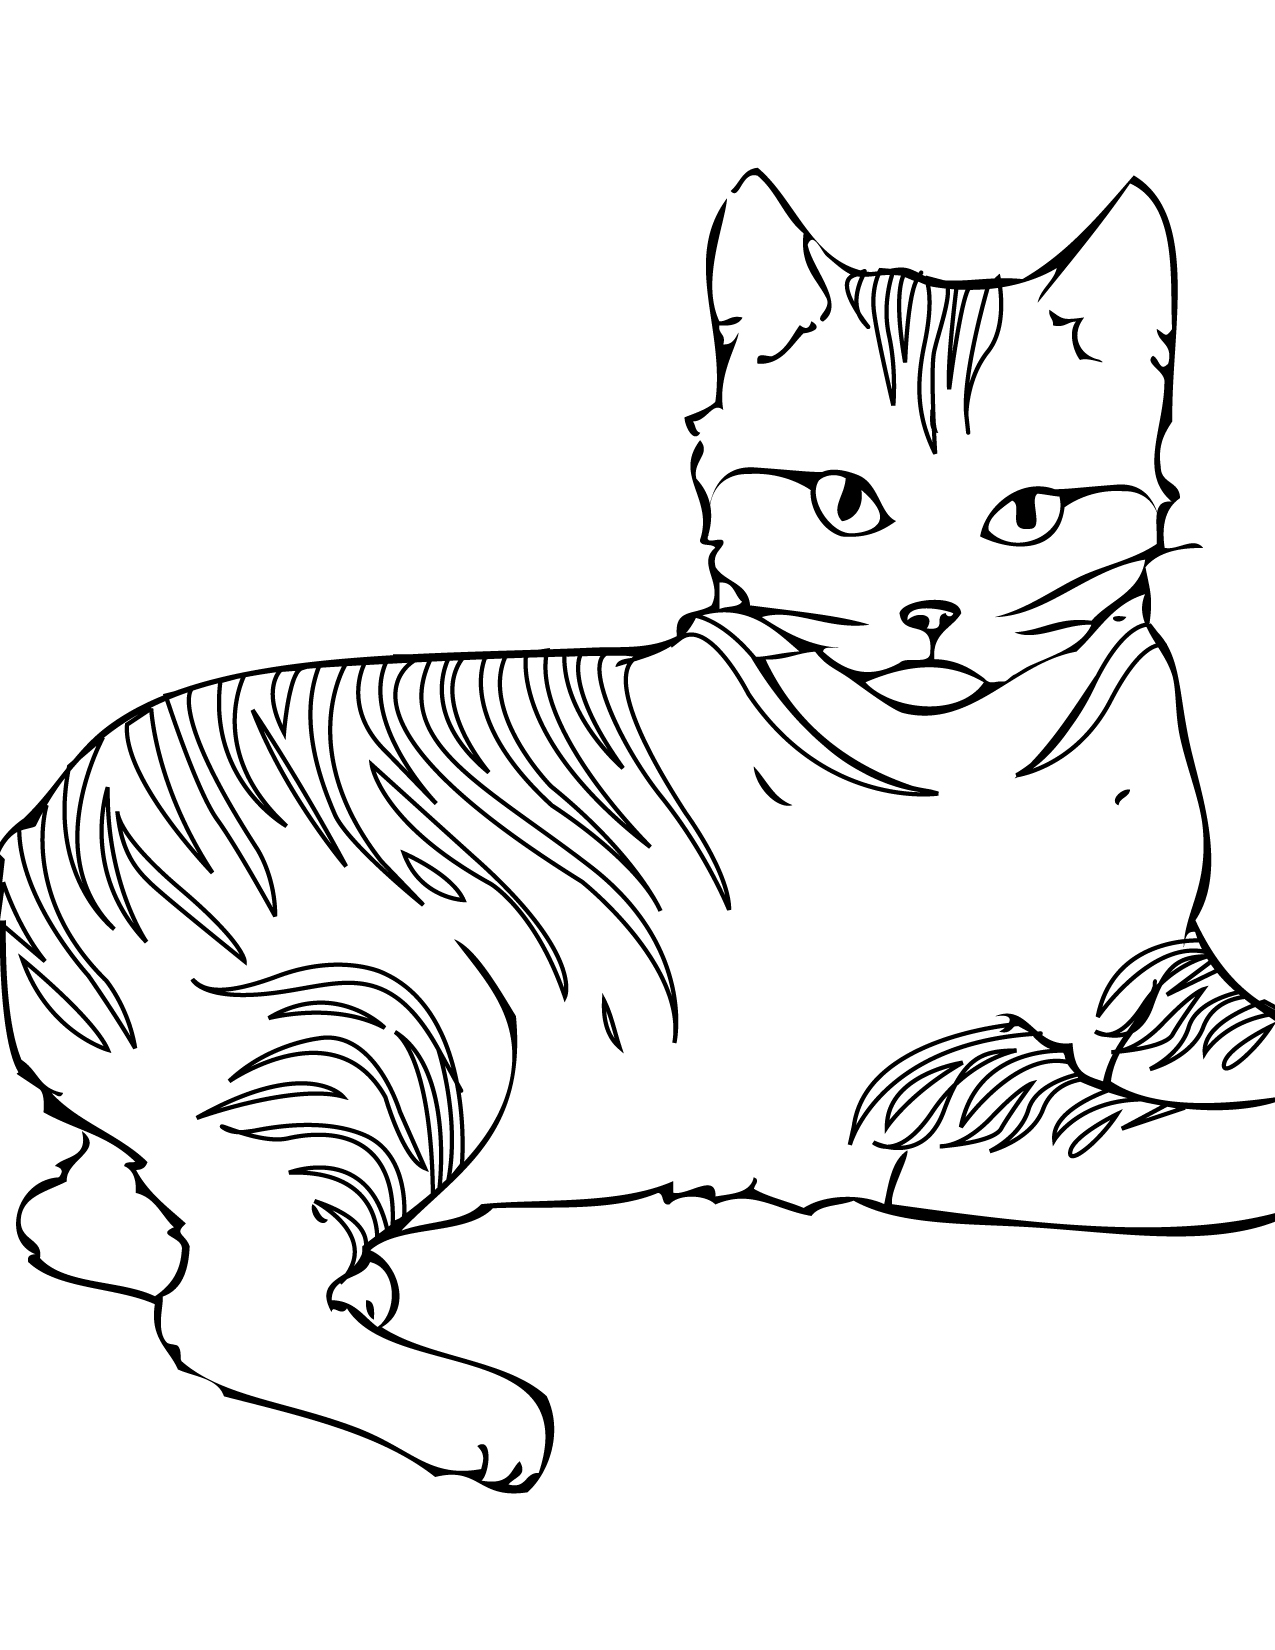 cat colouring pictures free printable cat coloring pages for kids colouring cat pictures